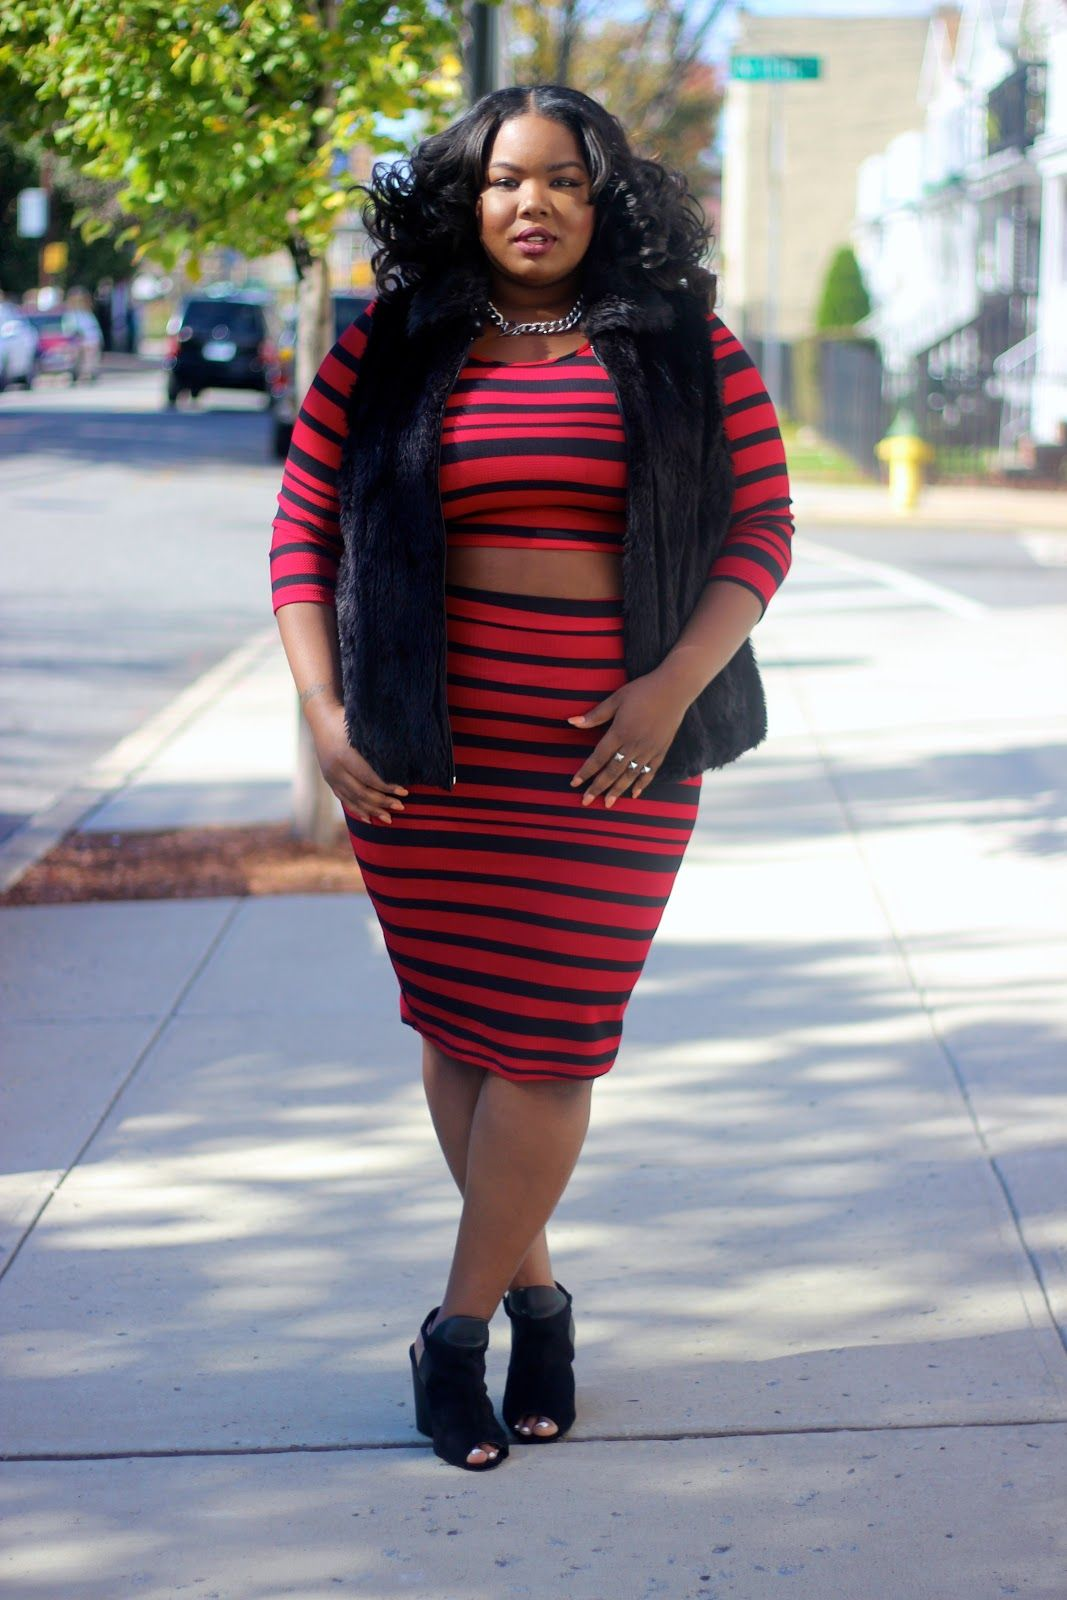 staley black girls personals My single friends and i can attest to the trials that come with having fewer dating options and outnumbering black men in angela stanley is a.